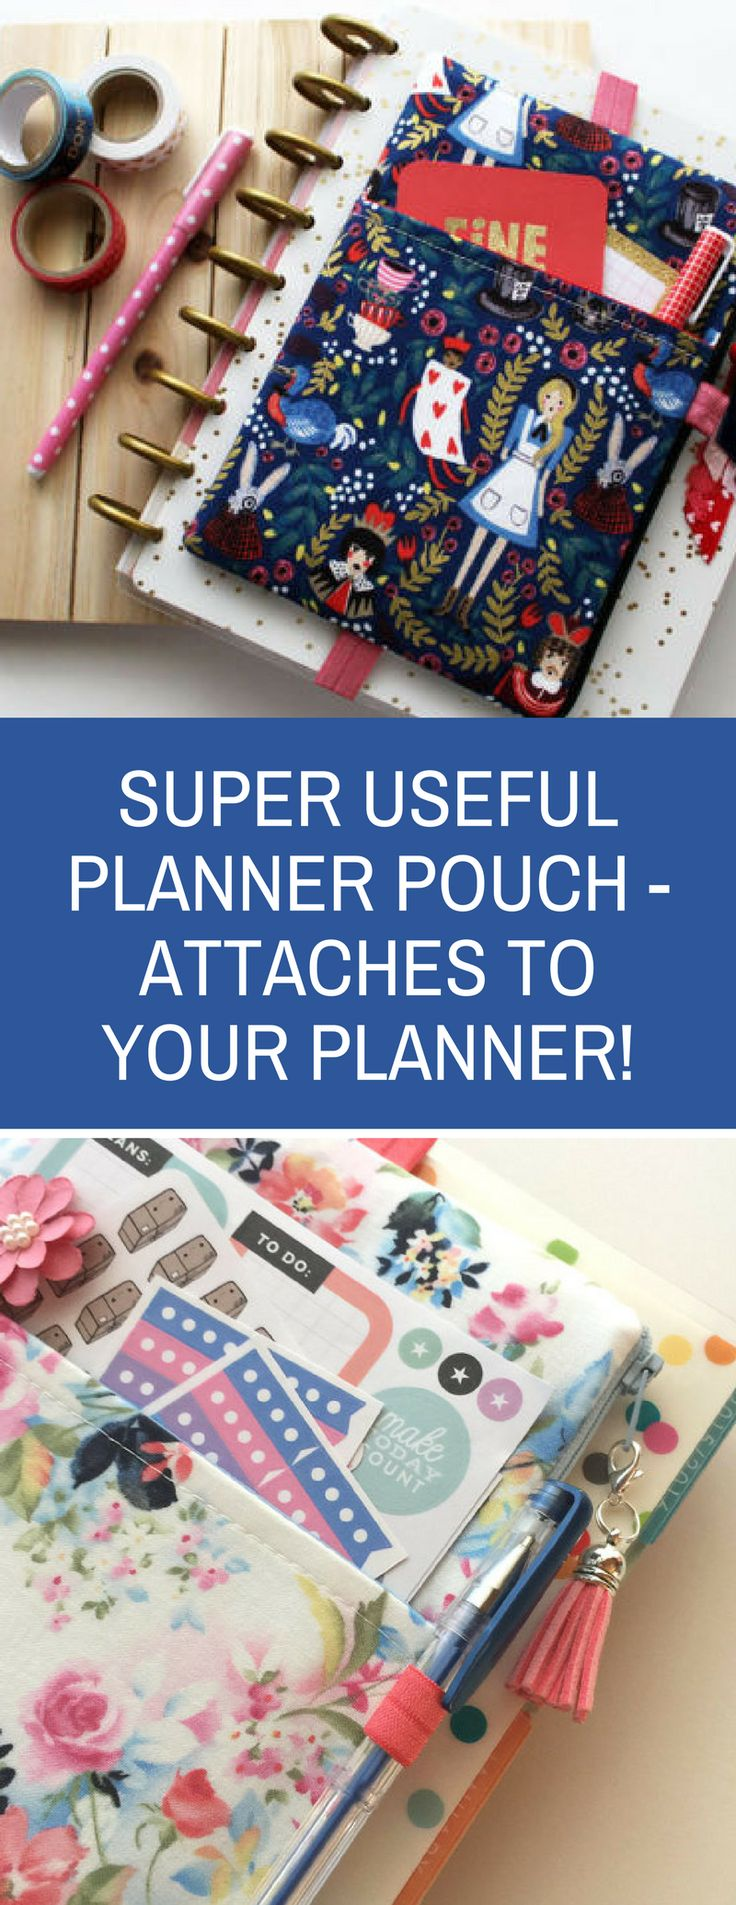 These planner pouches are the perfect way to keep your favourite pens, stencils and washi tape right on your planner! I love mine! #ad #bulletjournal #planner #stationery